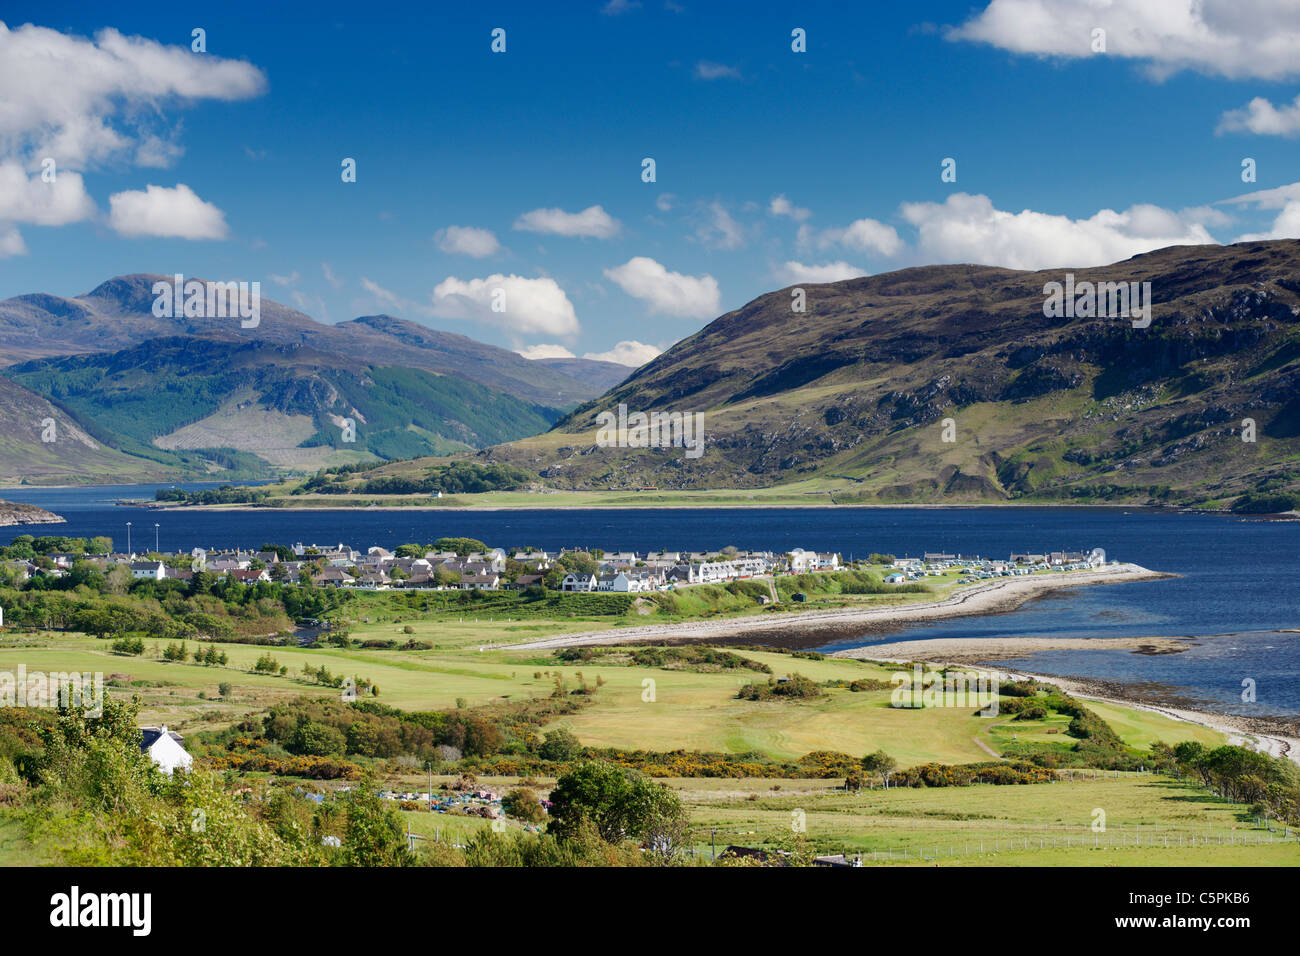 Overlooking Ullapool and Loch Broom, Ross and Cromarty, Highland, Scotland, UK. - Stock Image